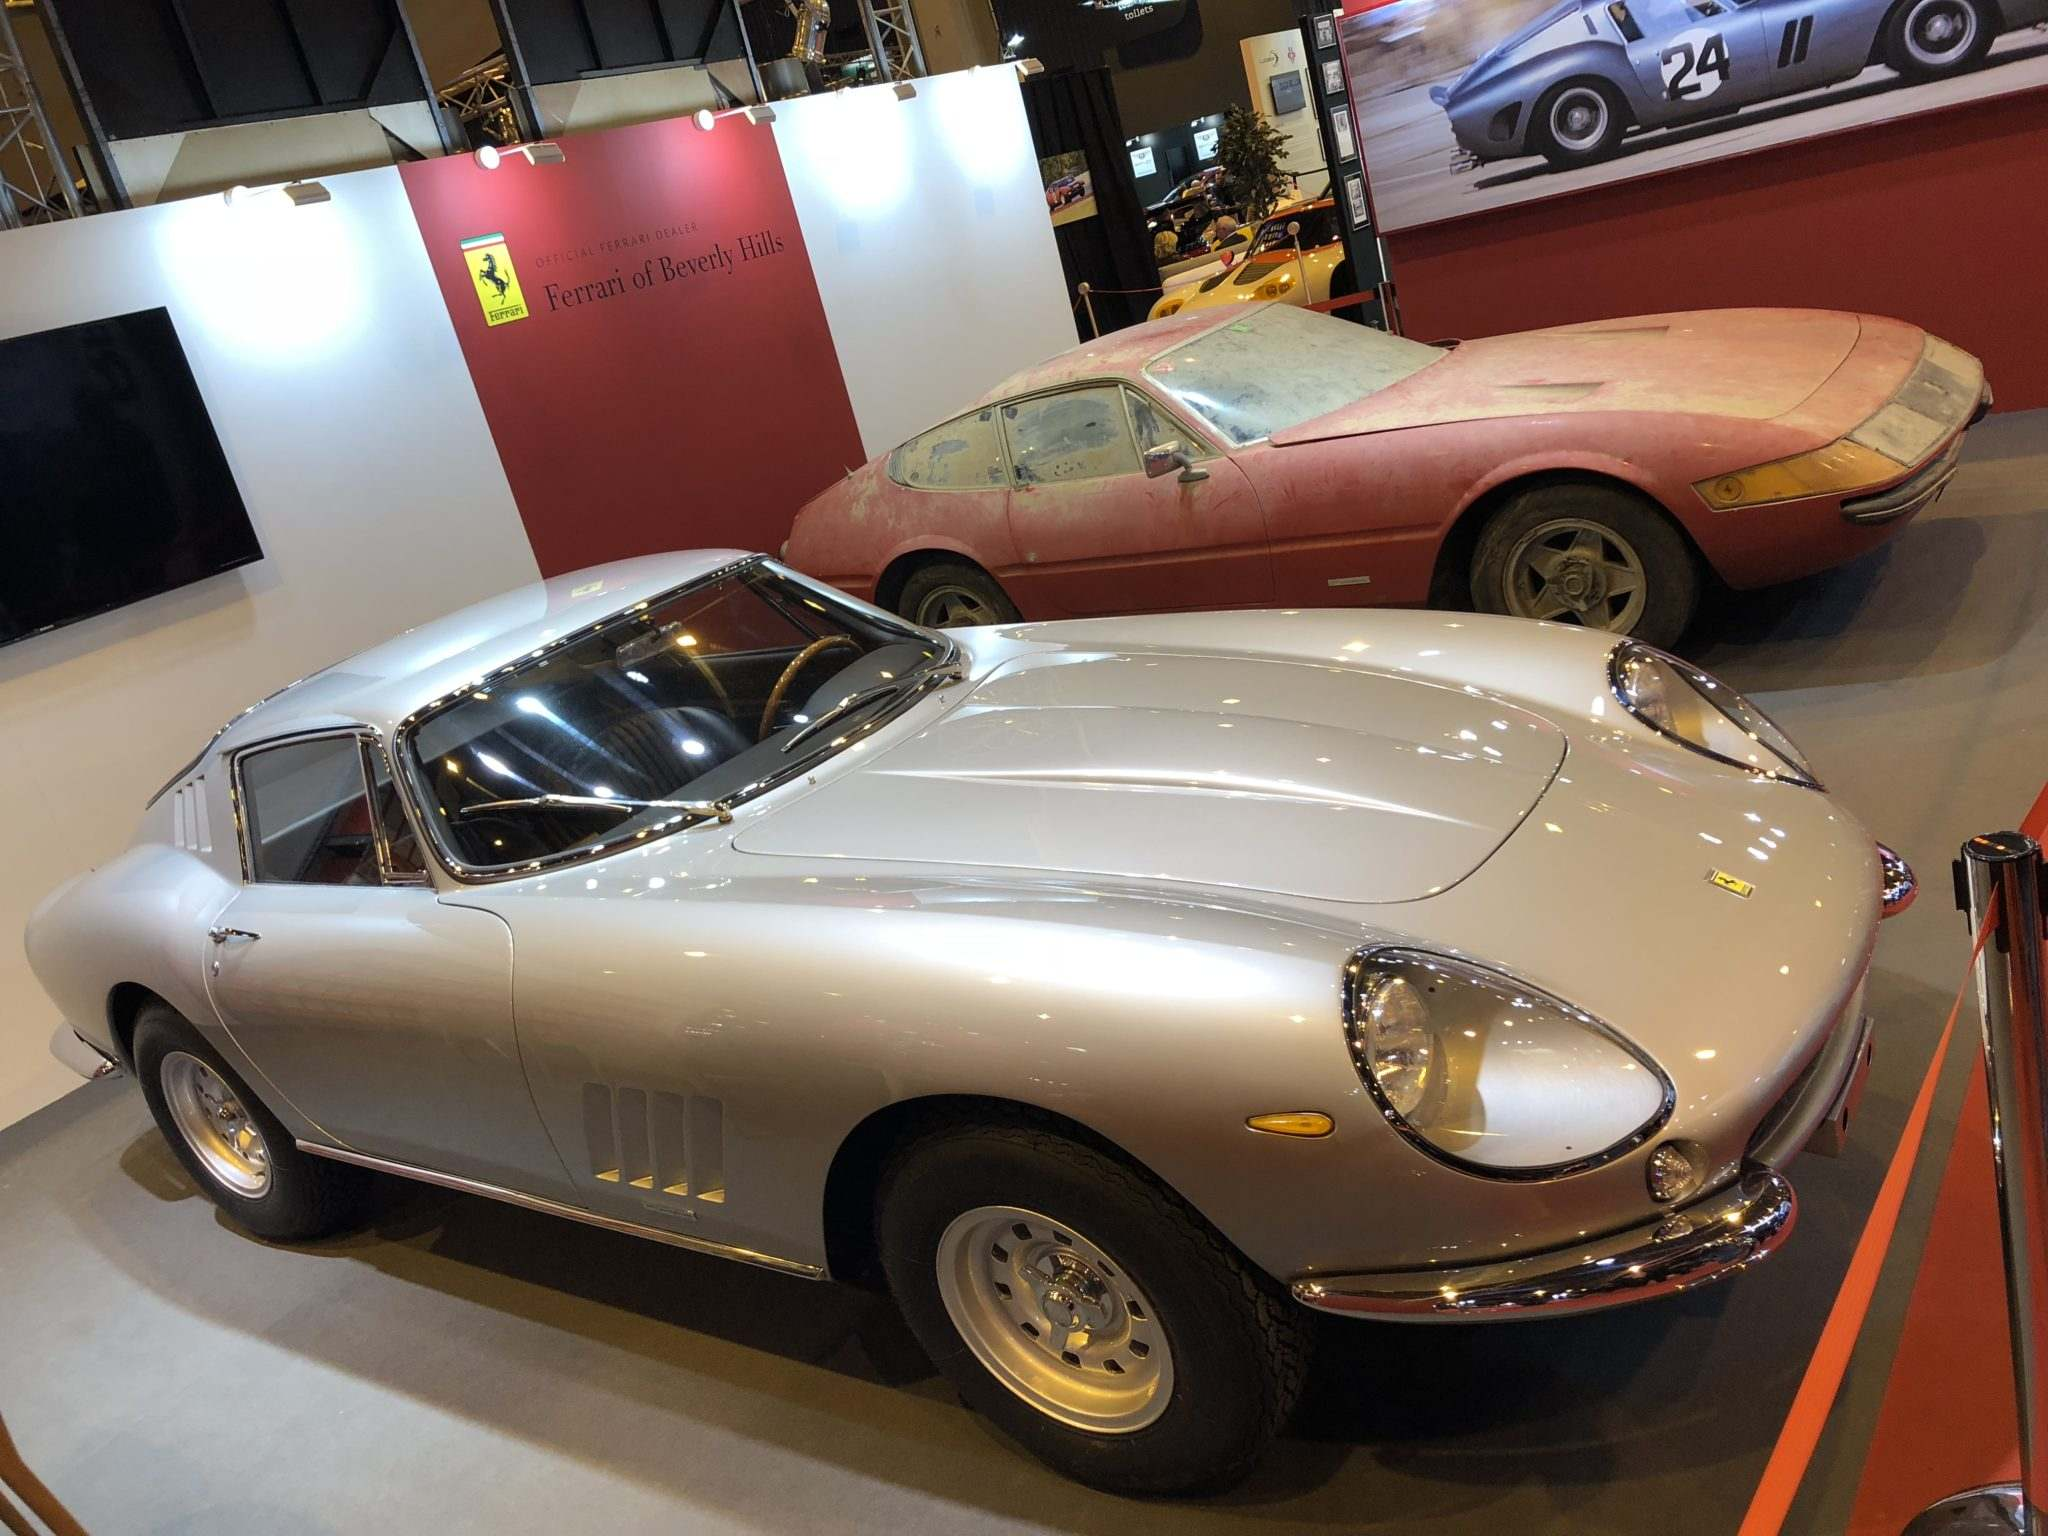 A beautiful 275 GTB/4 was at her side.